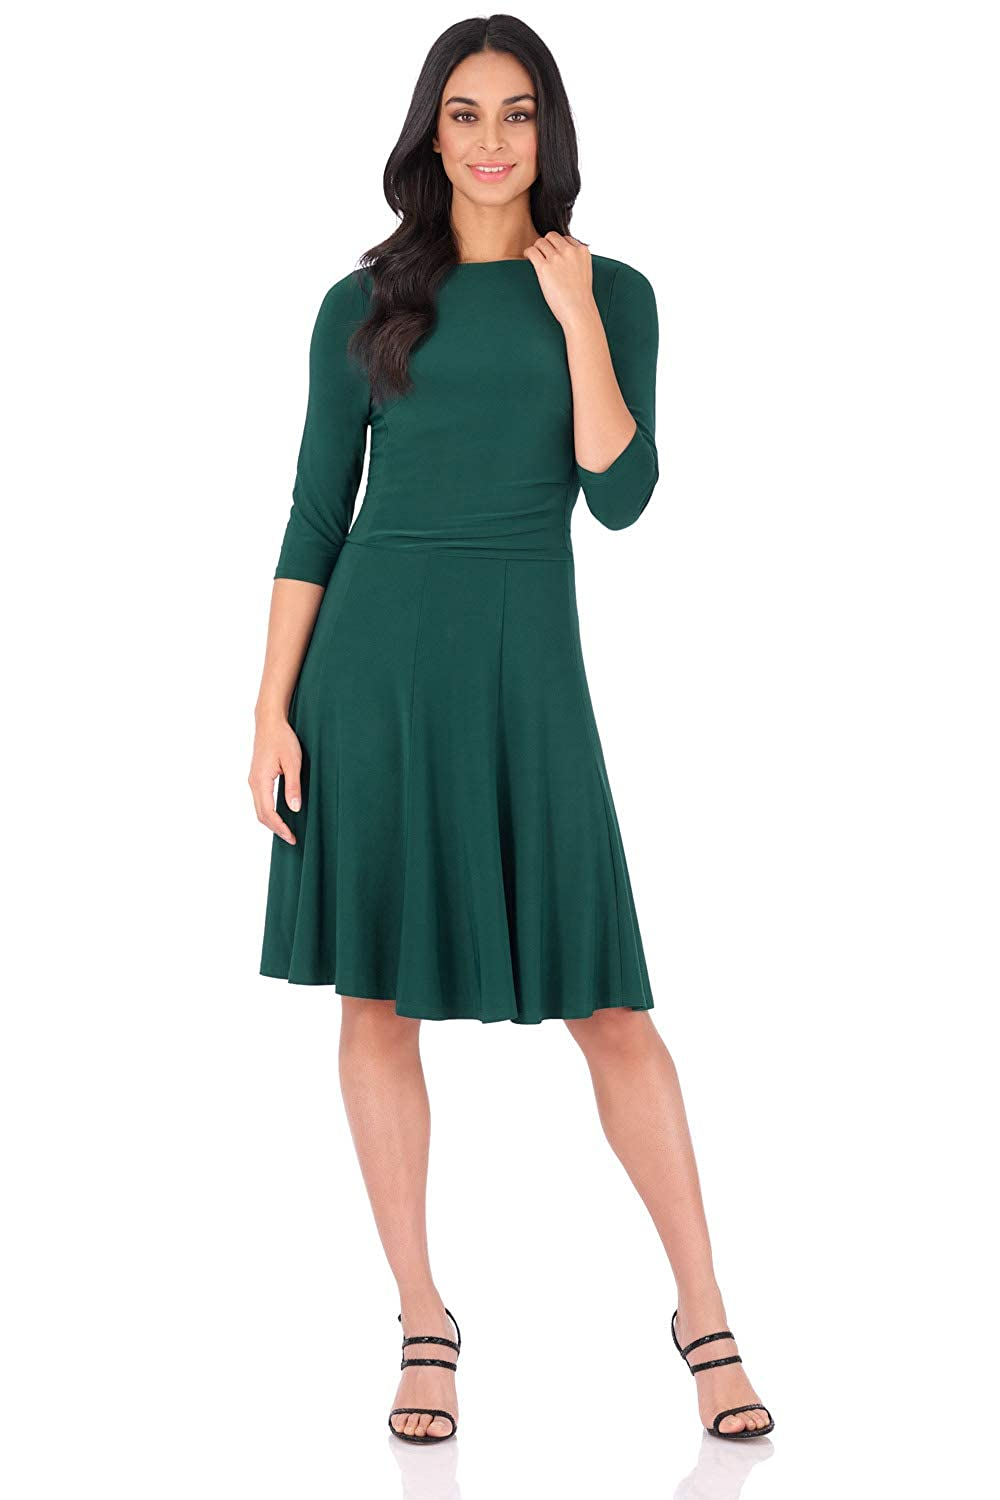 765702dbb87c Rekucci Women's Flippy Fit N' Flare Dress with 3/4 Sleeves at Amazon  Women's Clothing store: